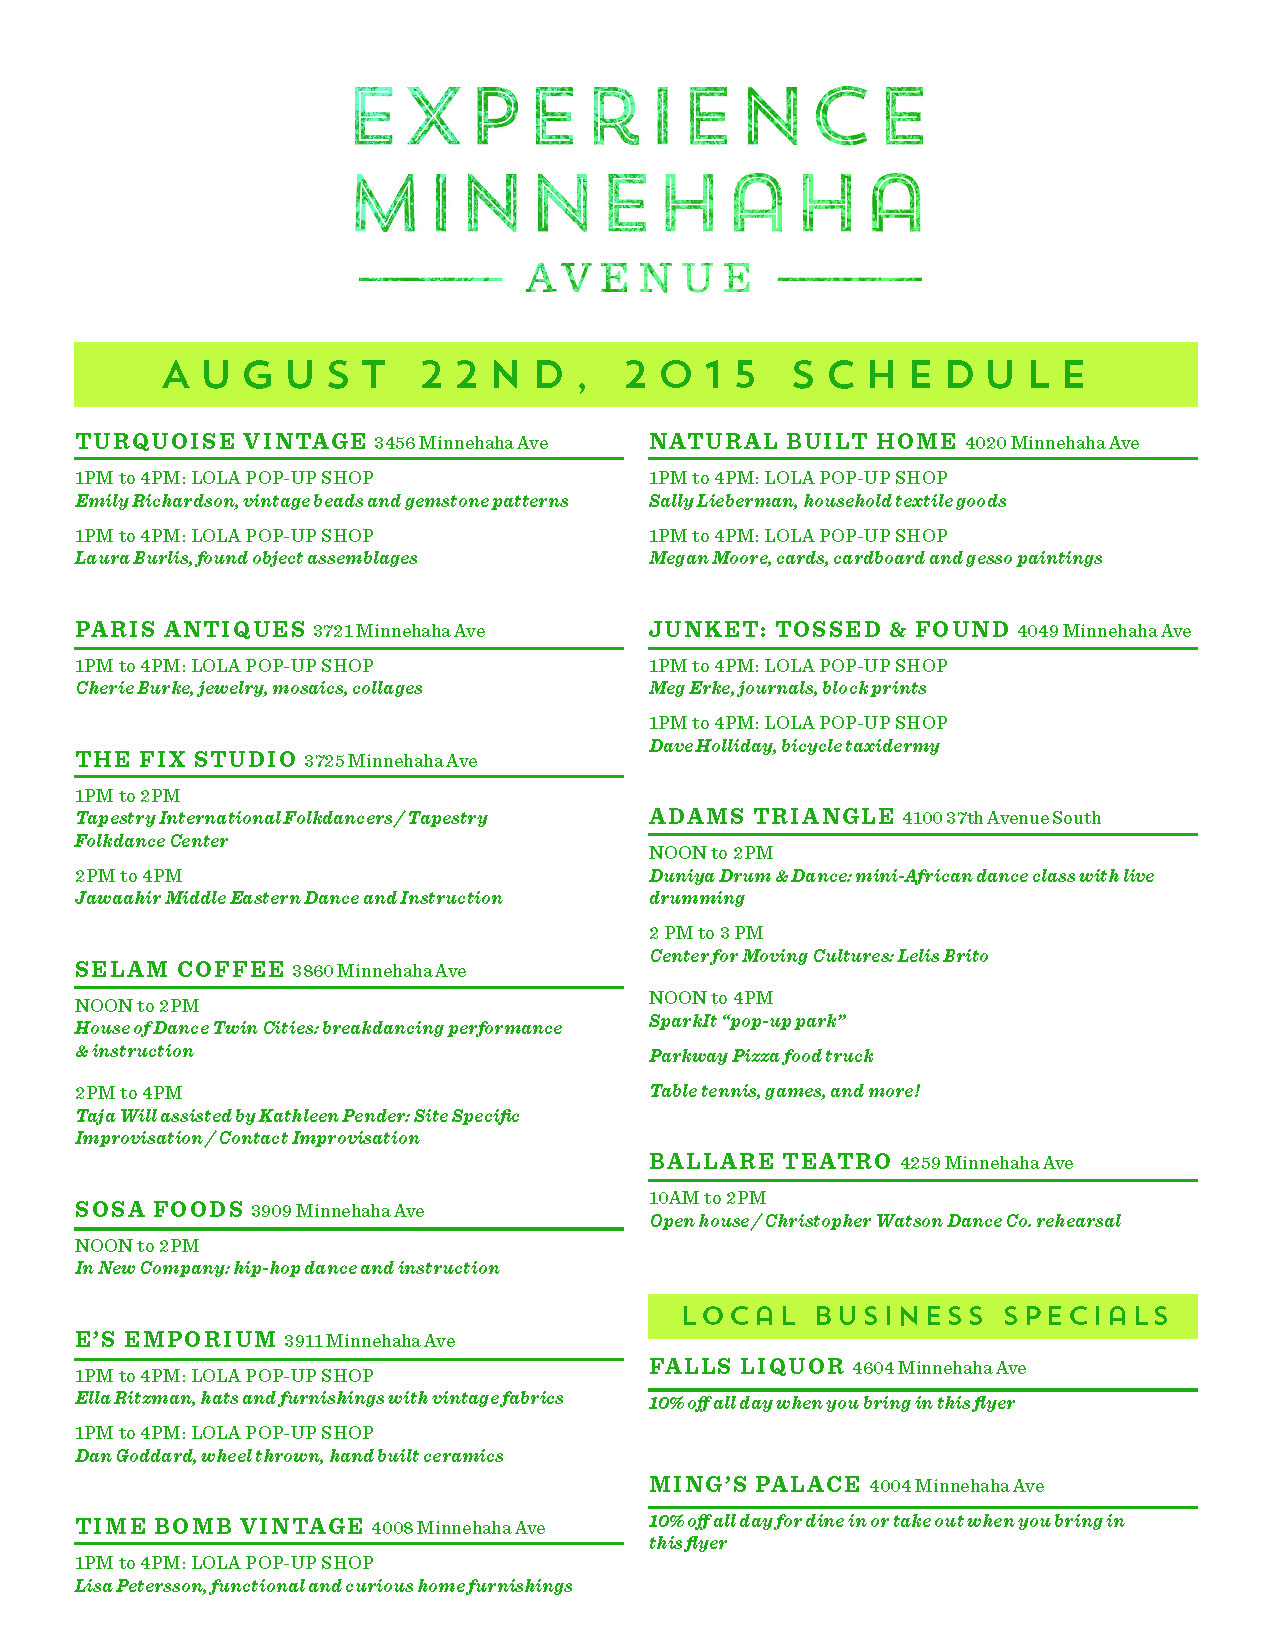 Aug 22 Experience Minnehaha Schedule